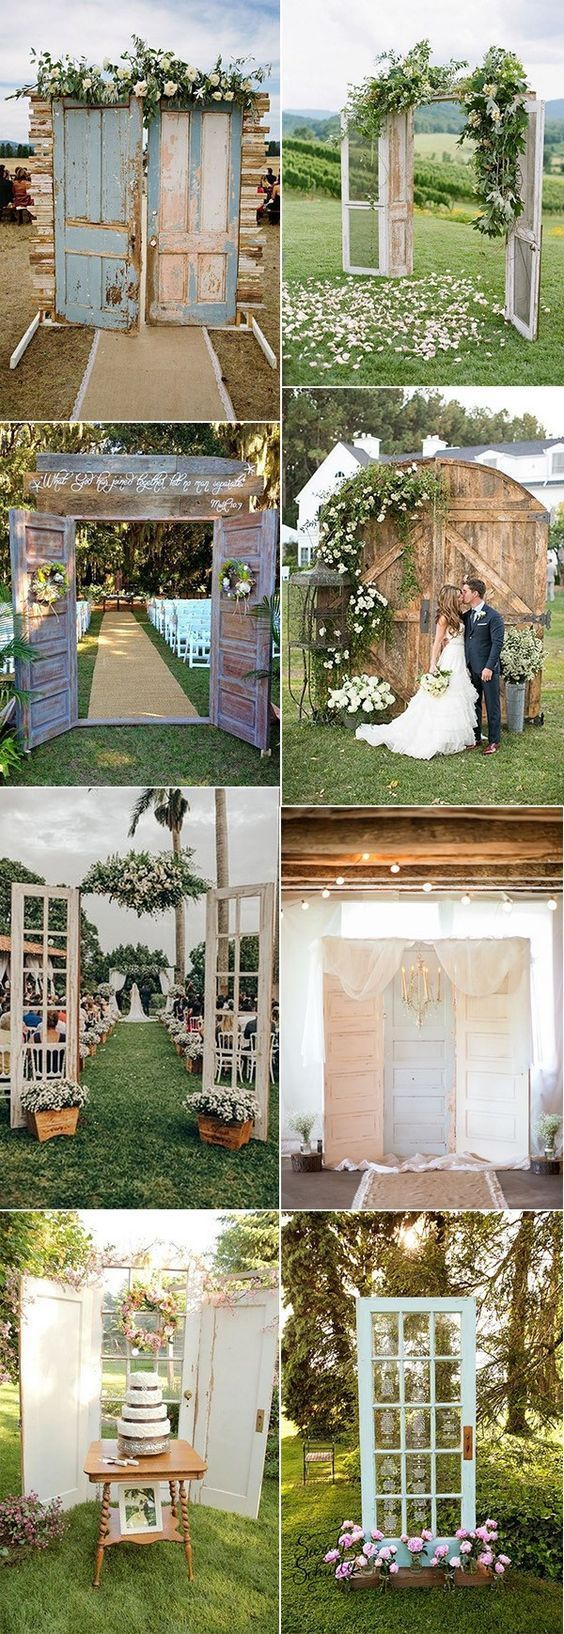 Cheap Spring Decorations: 100+rustic Wedding Ideas---diy Country Outdoor Wedding